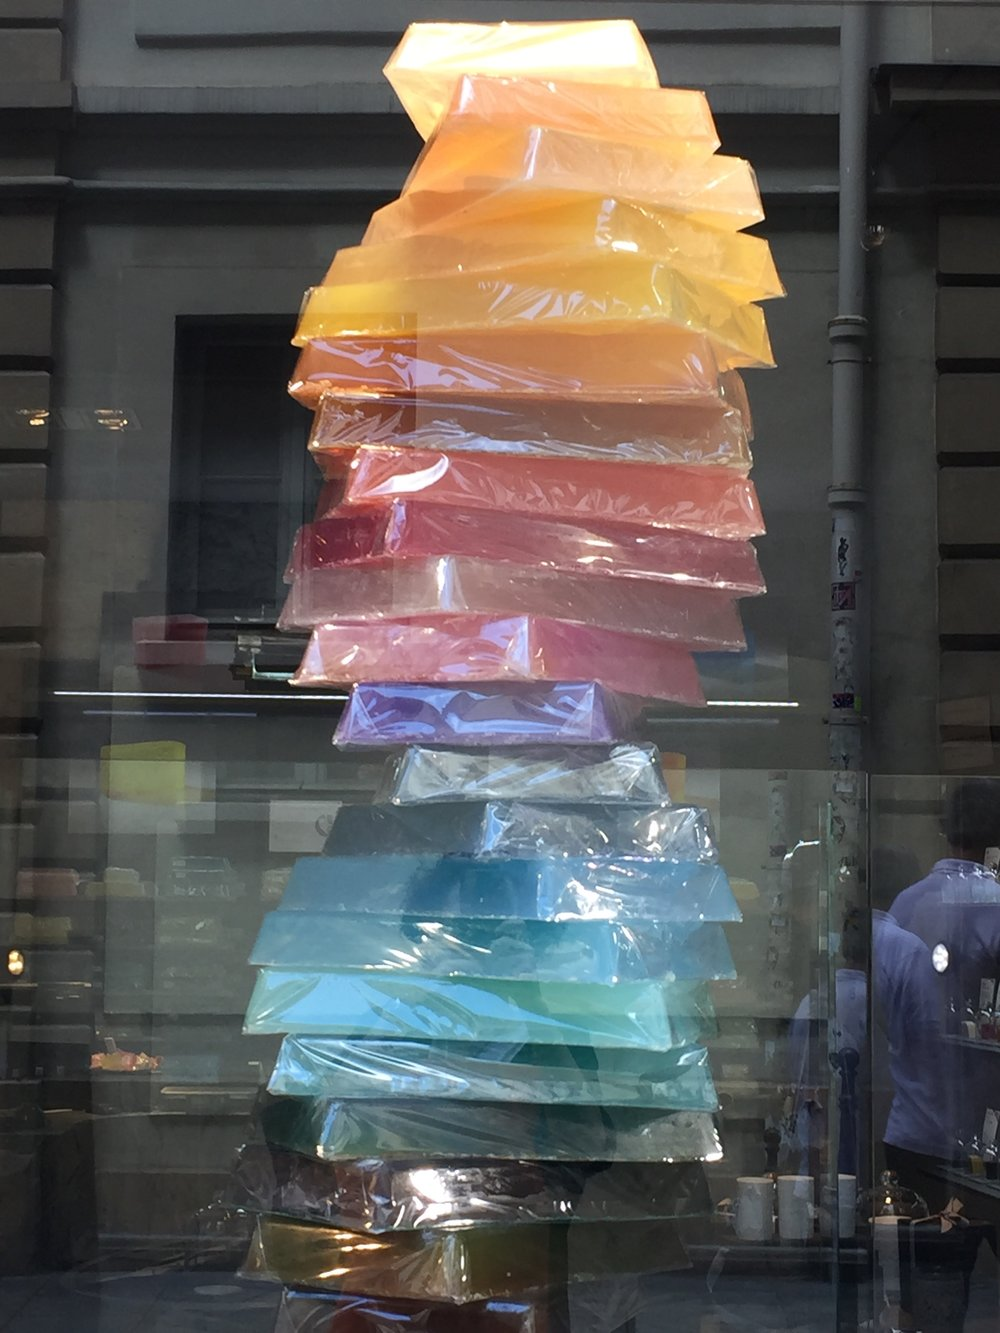 A fun display of colorful soap tablets - Comptoir des Savonniers in Le Marais, Paris